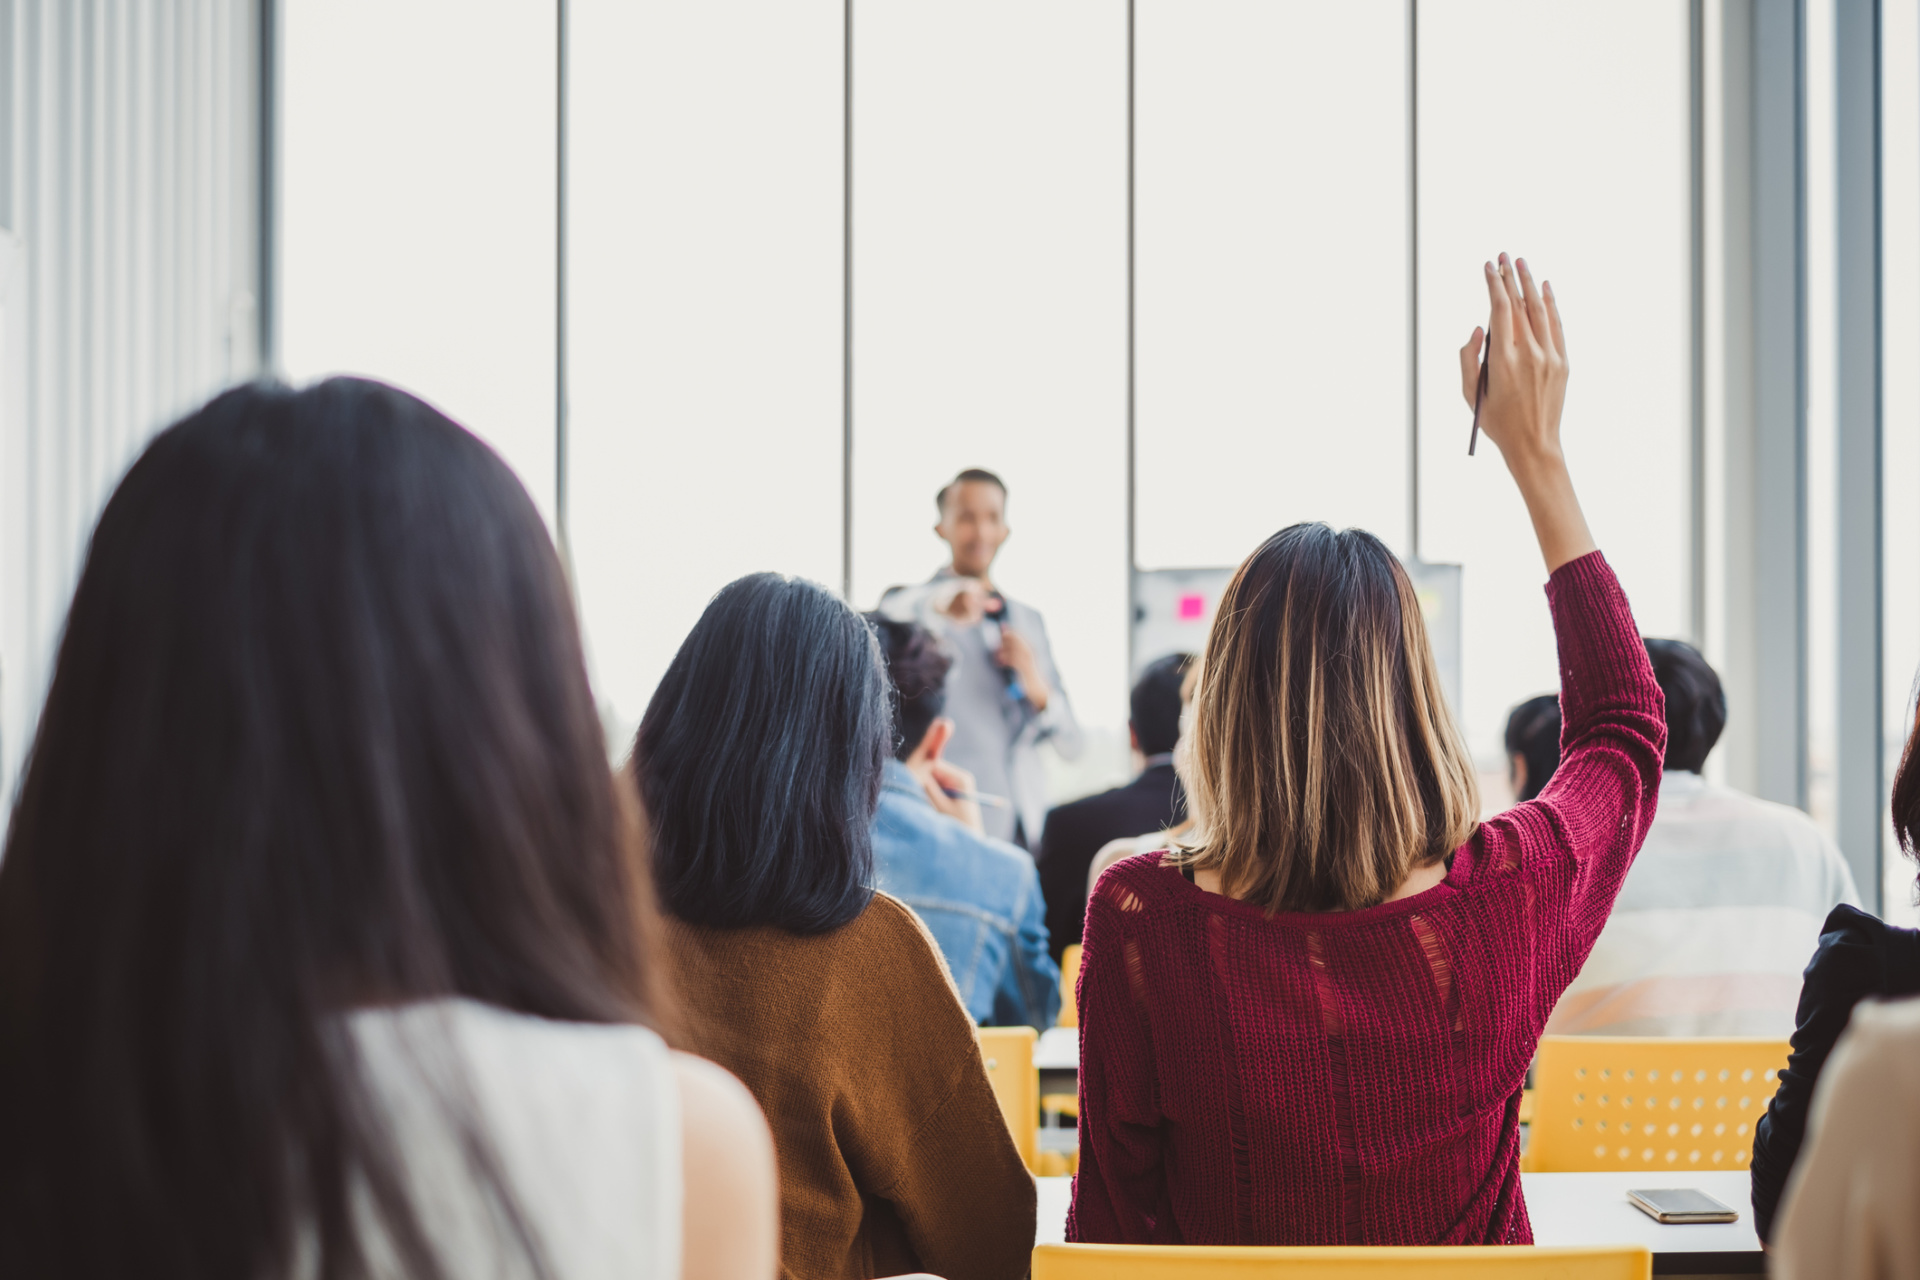 Improving Training Quality Through Community College Investments and Income Share Agreements